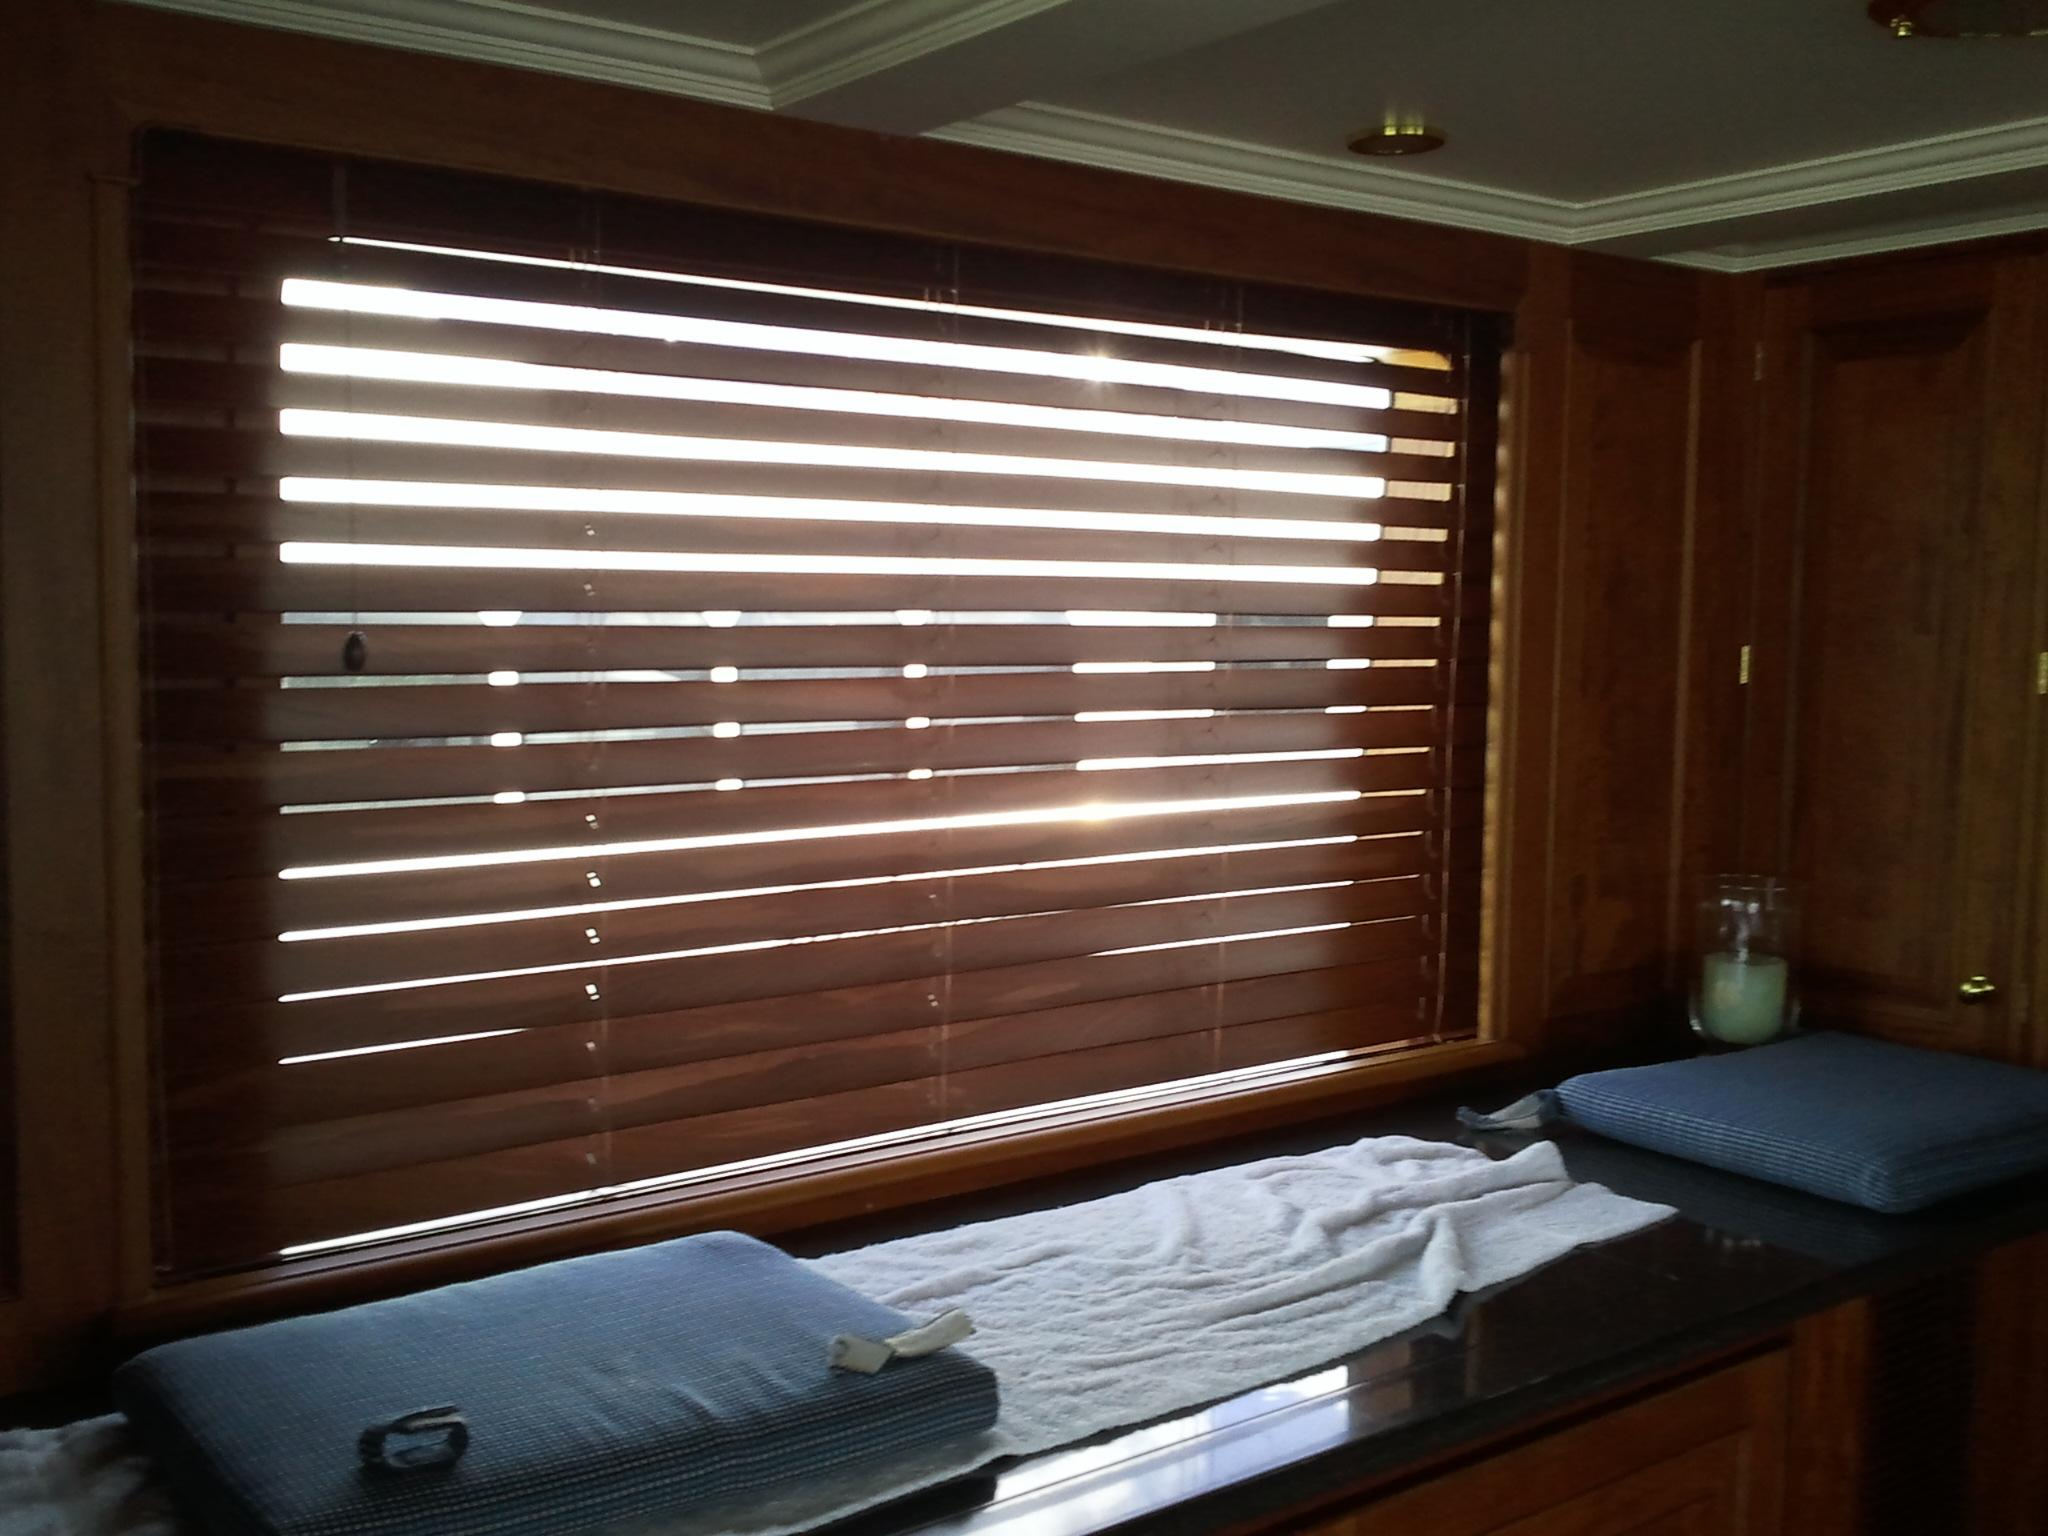 shade trading the and roman window post blinds spring kit sierra blind roller treatment shutters repair loaded guide shades in bamboo